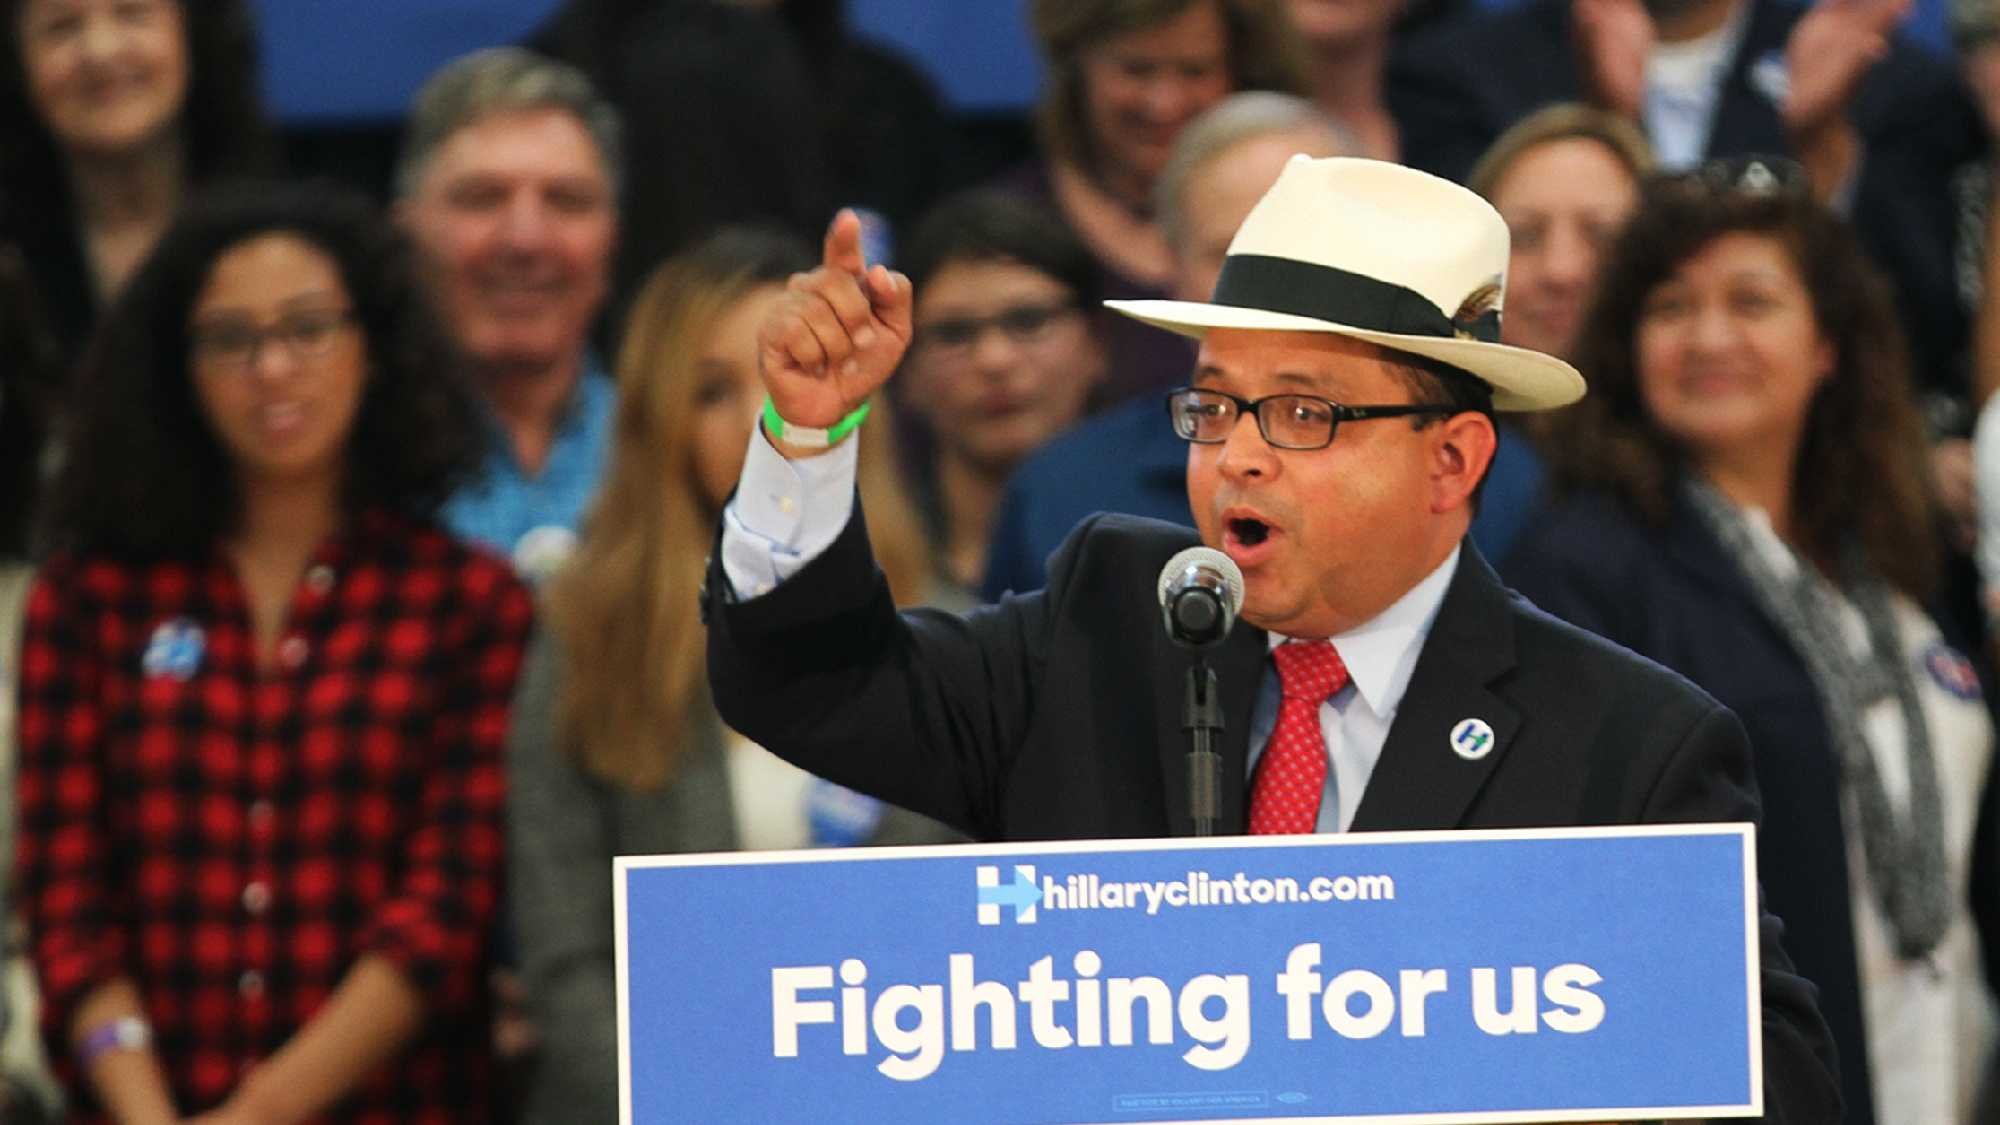 Luis Alejo introduced presidential candidate Hillary Clinton at a campaign rally in Salinas.